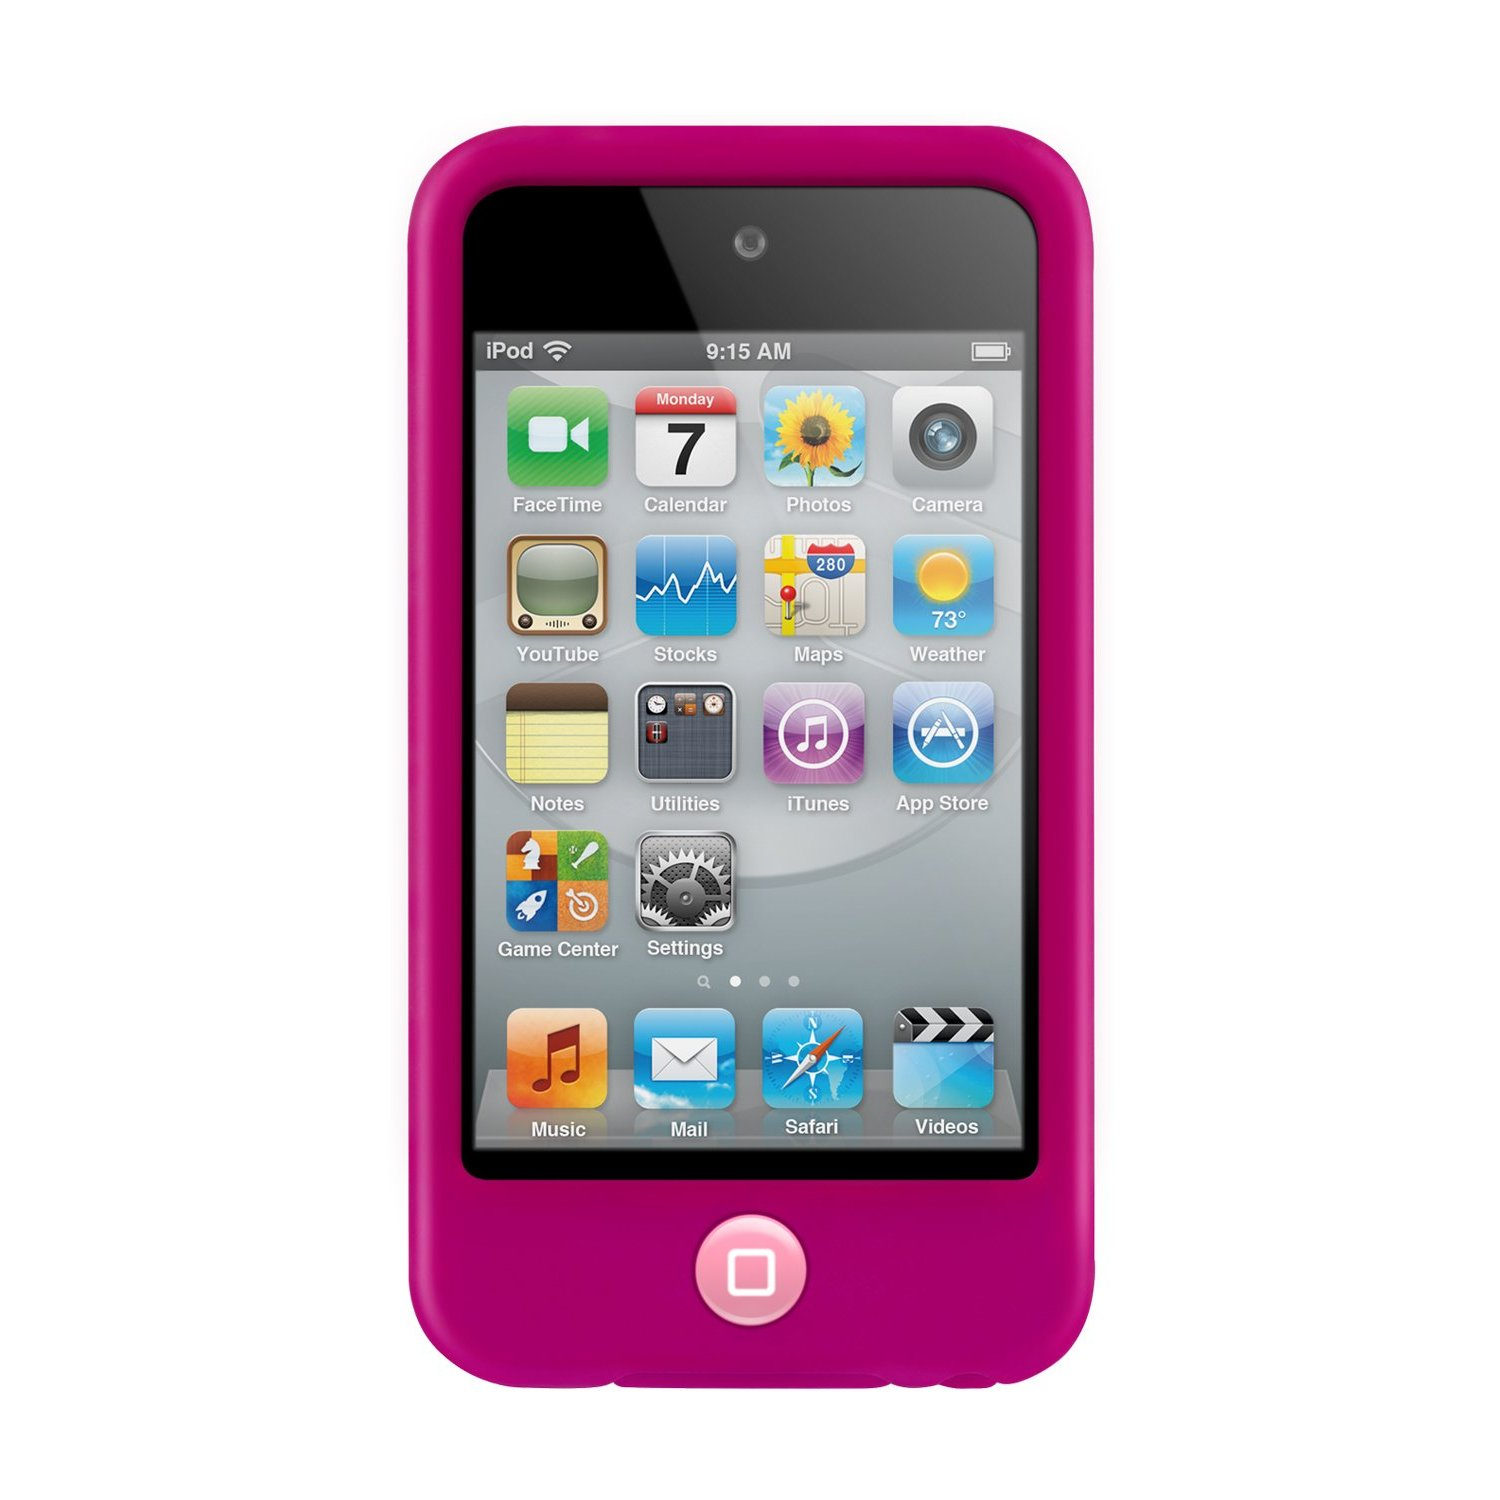 Silicon Case for iTouch 4 (ipod Touch 4th Gen) - Pink